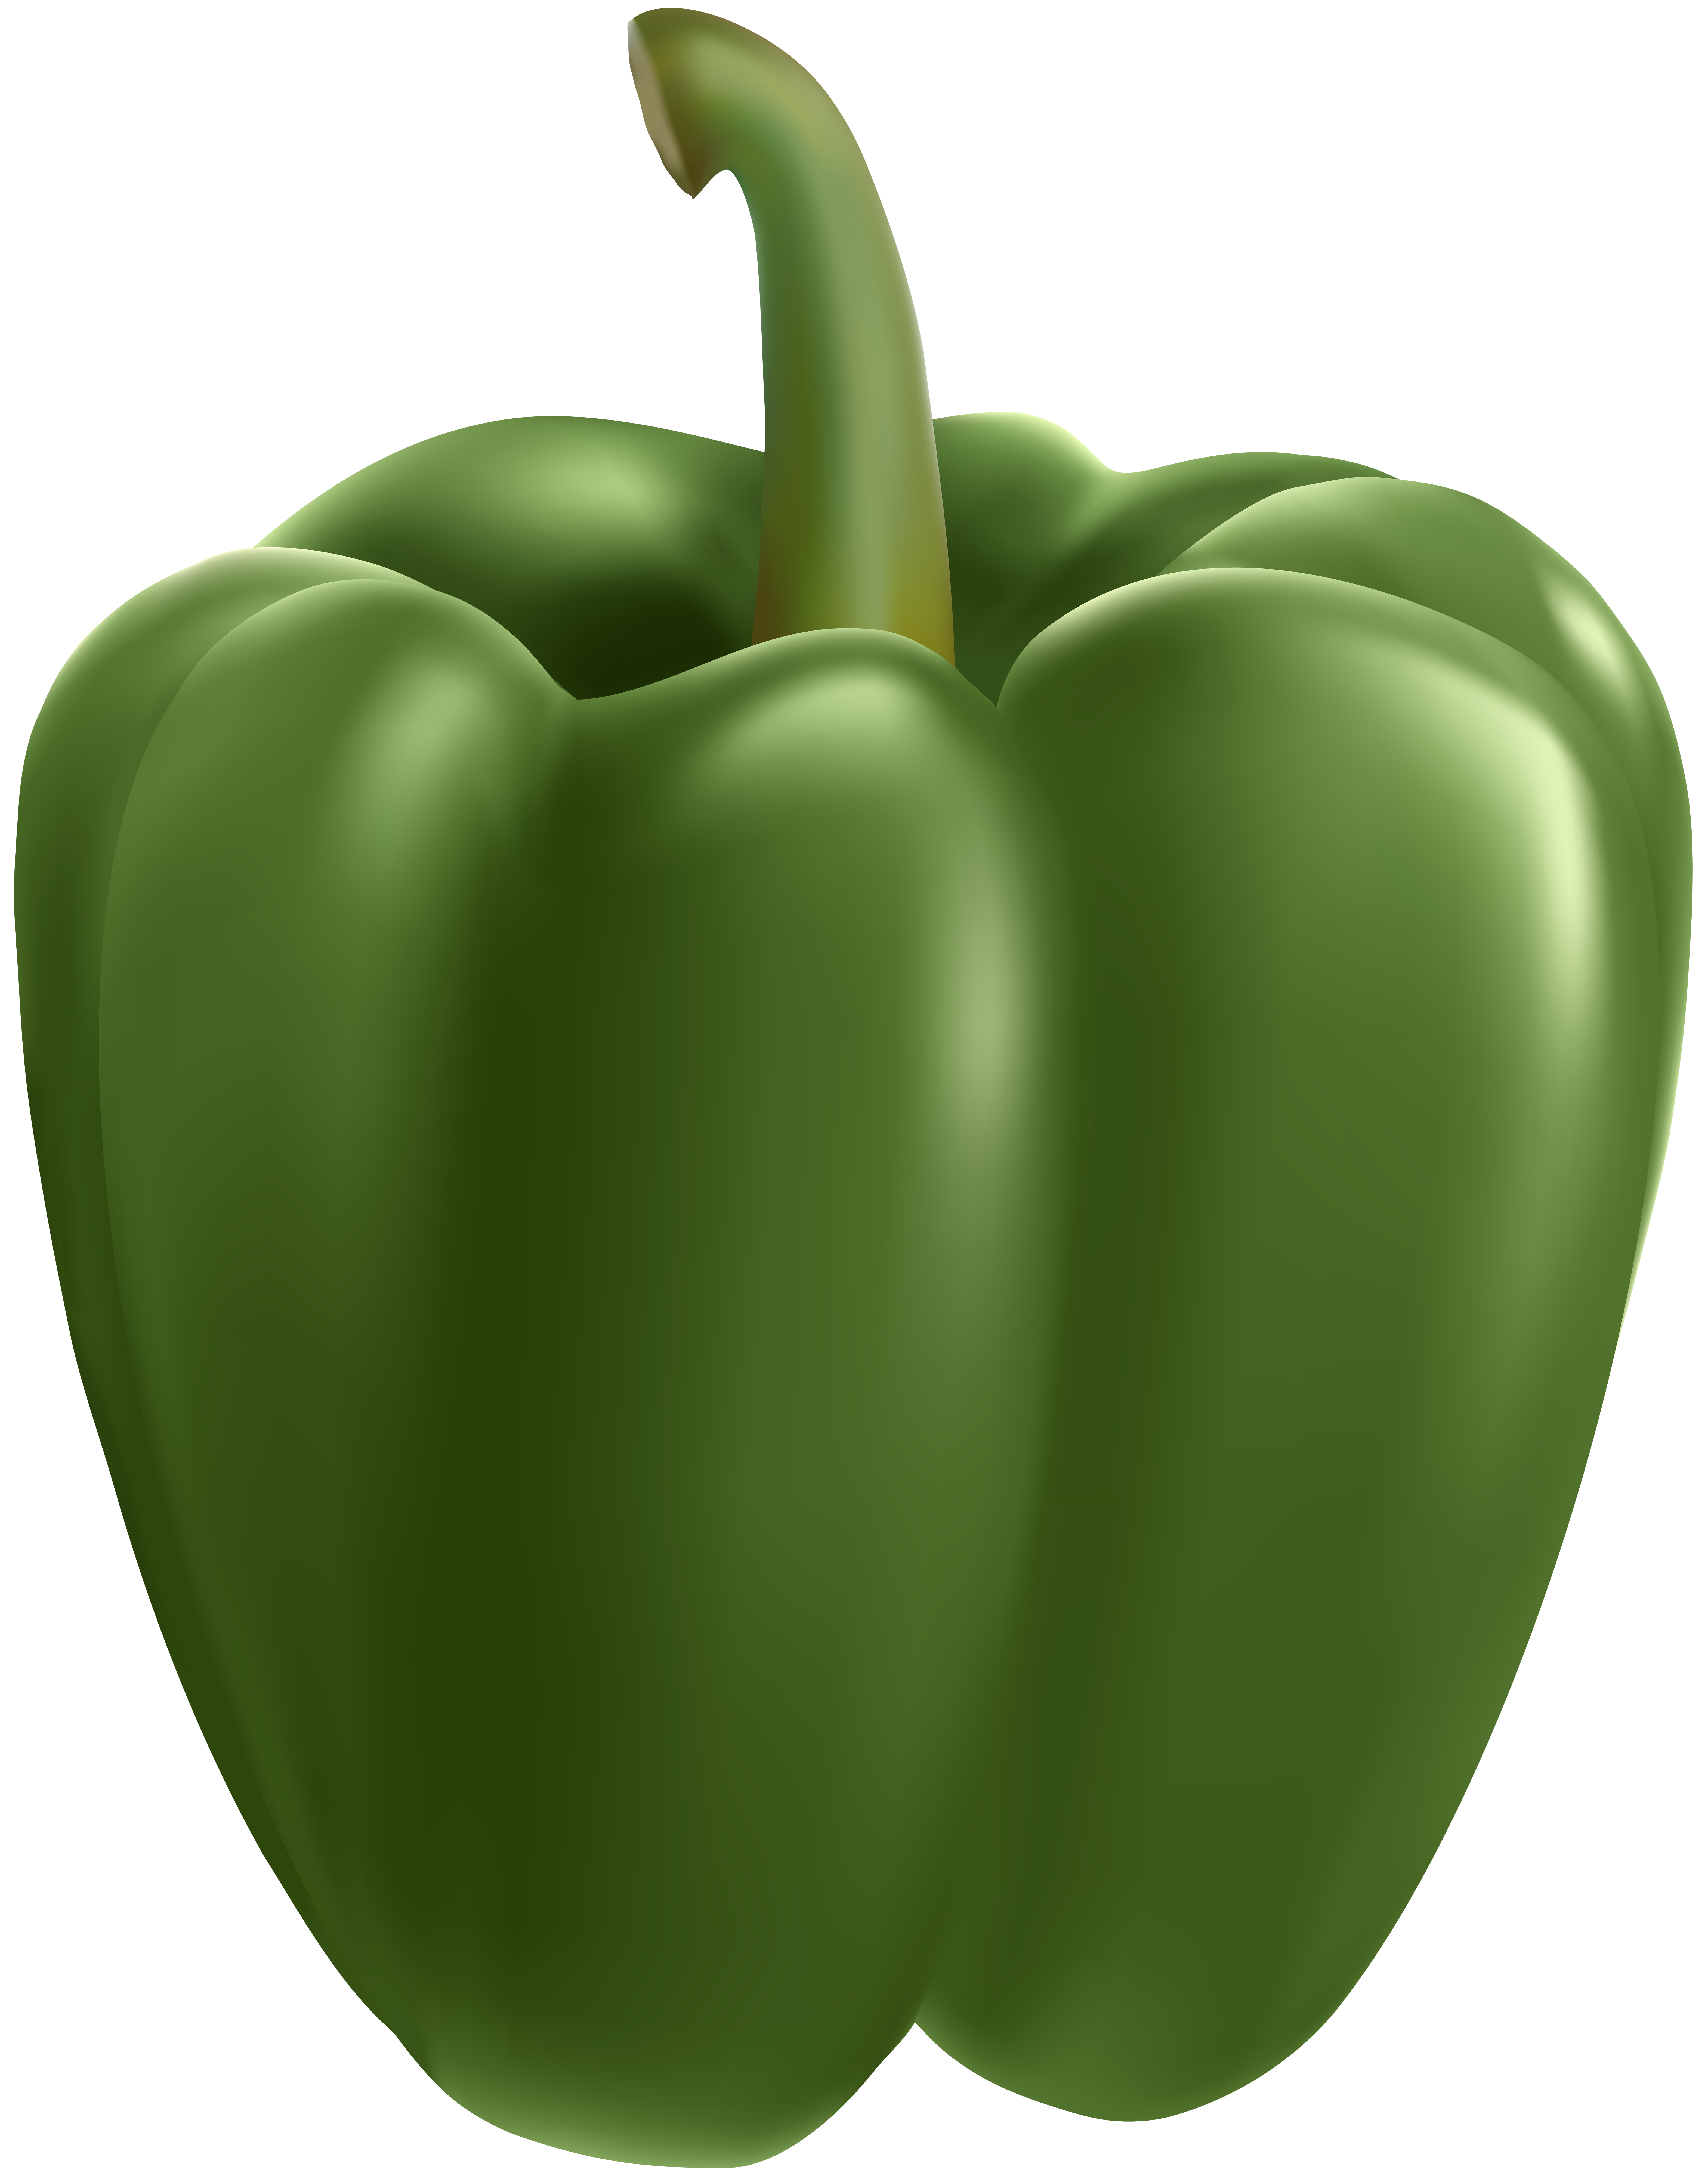 Green bell pepper png cartoon. Transparent clip art image